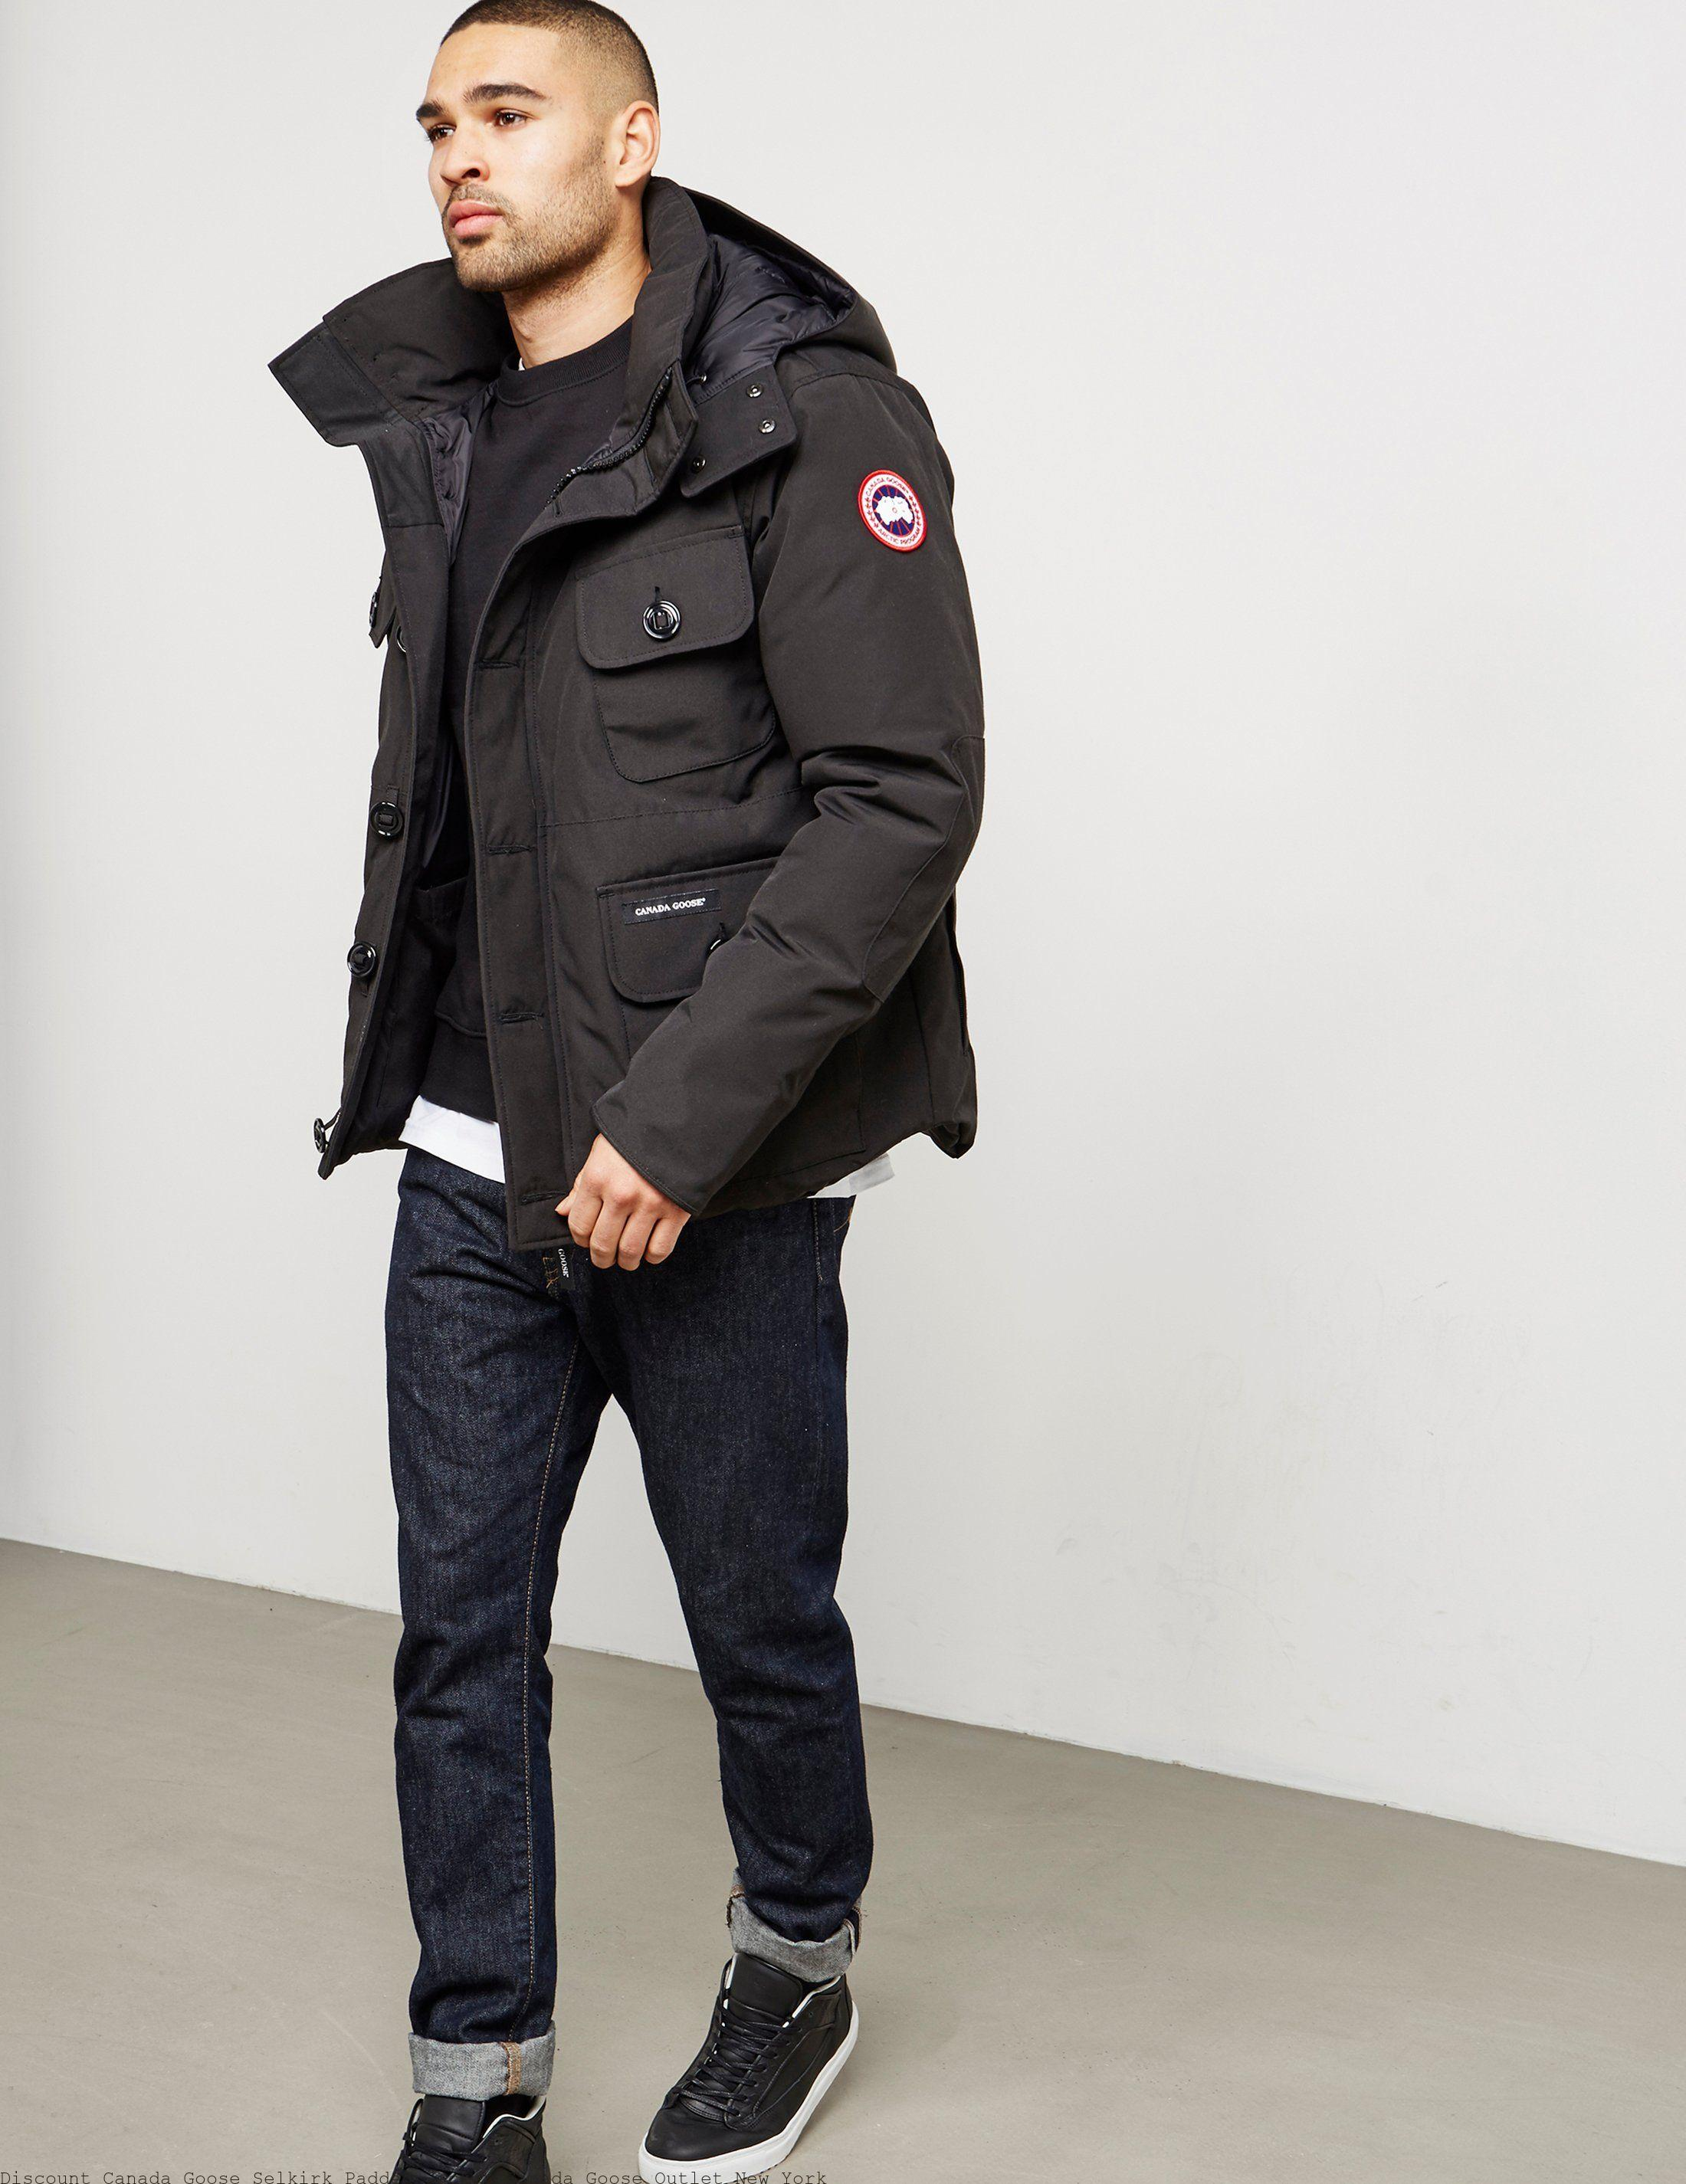 canada goose jacket outlet new york